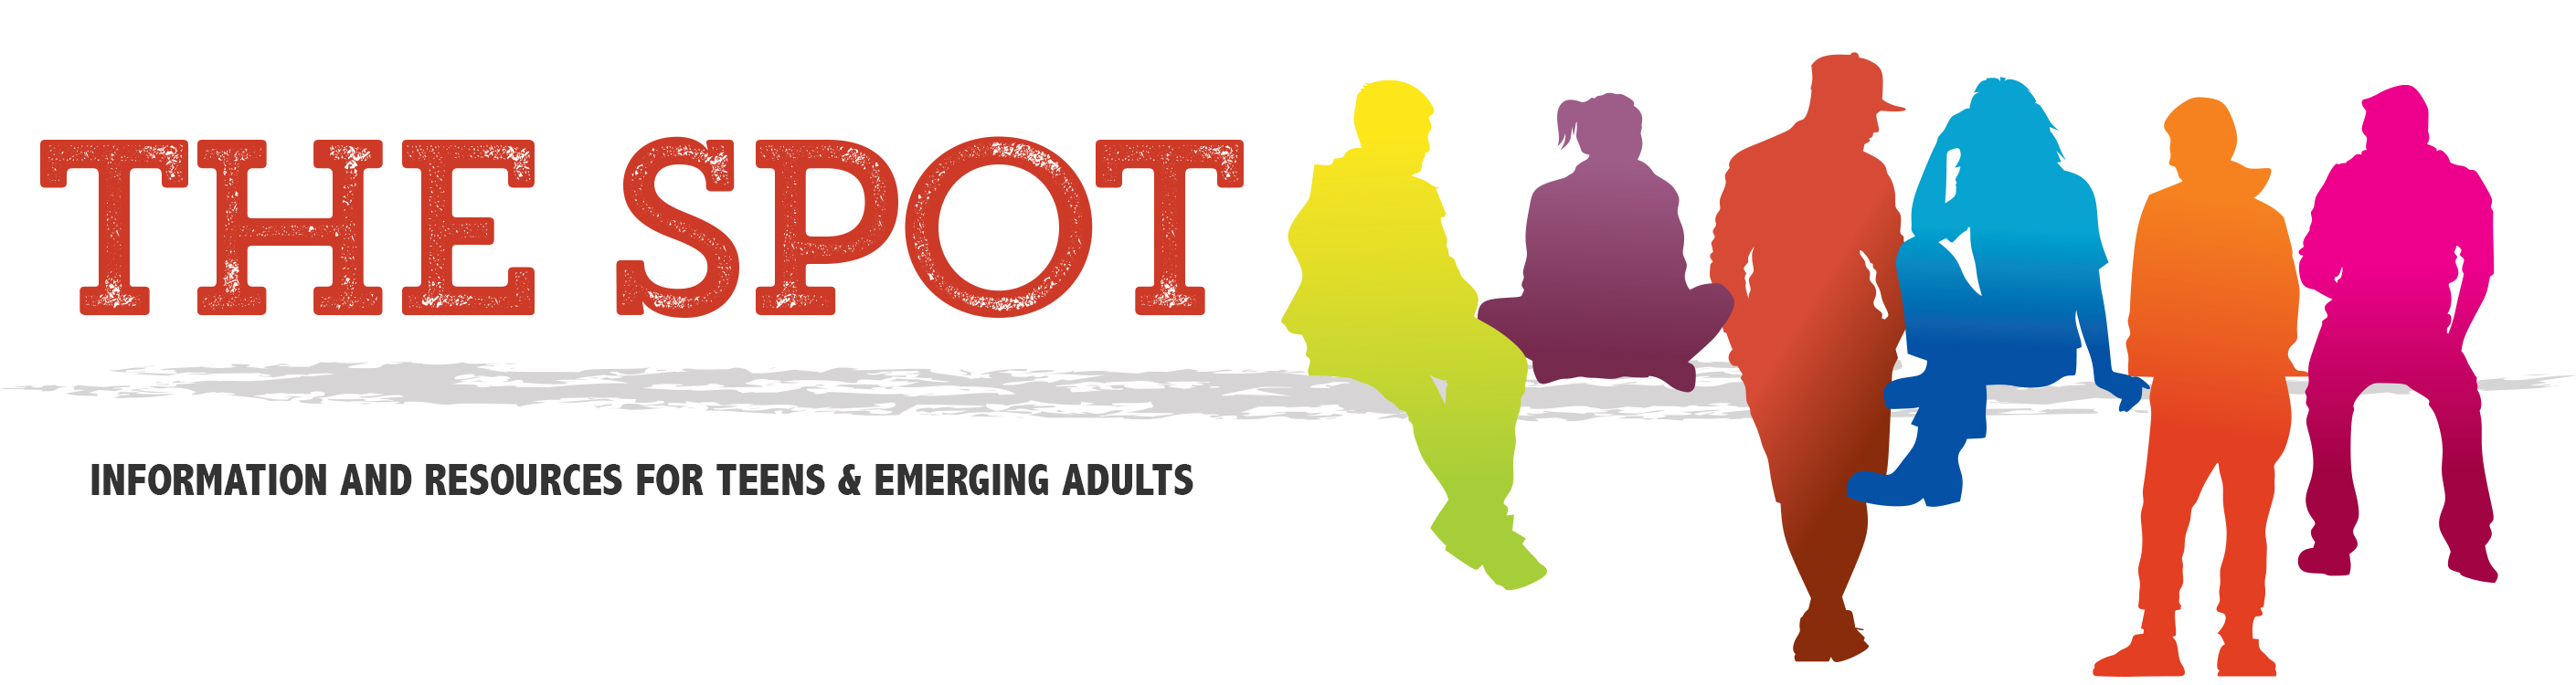 The Spot. Information and Resources for Teens and Emerging Adults